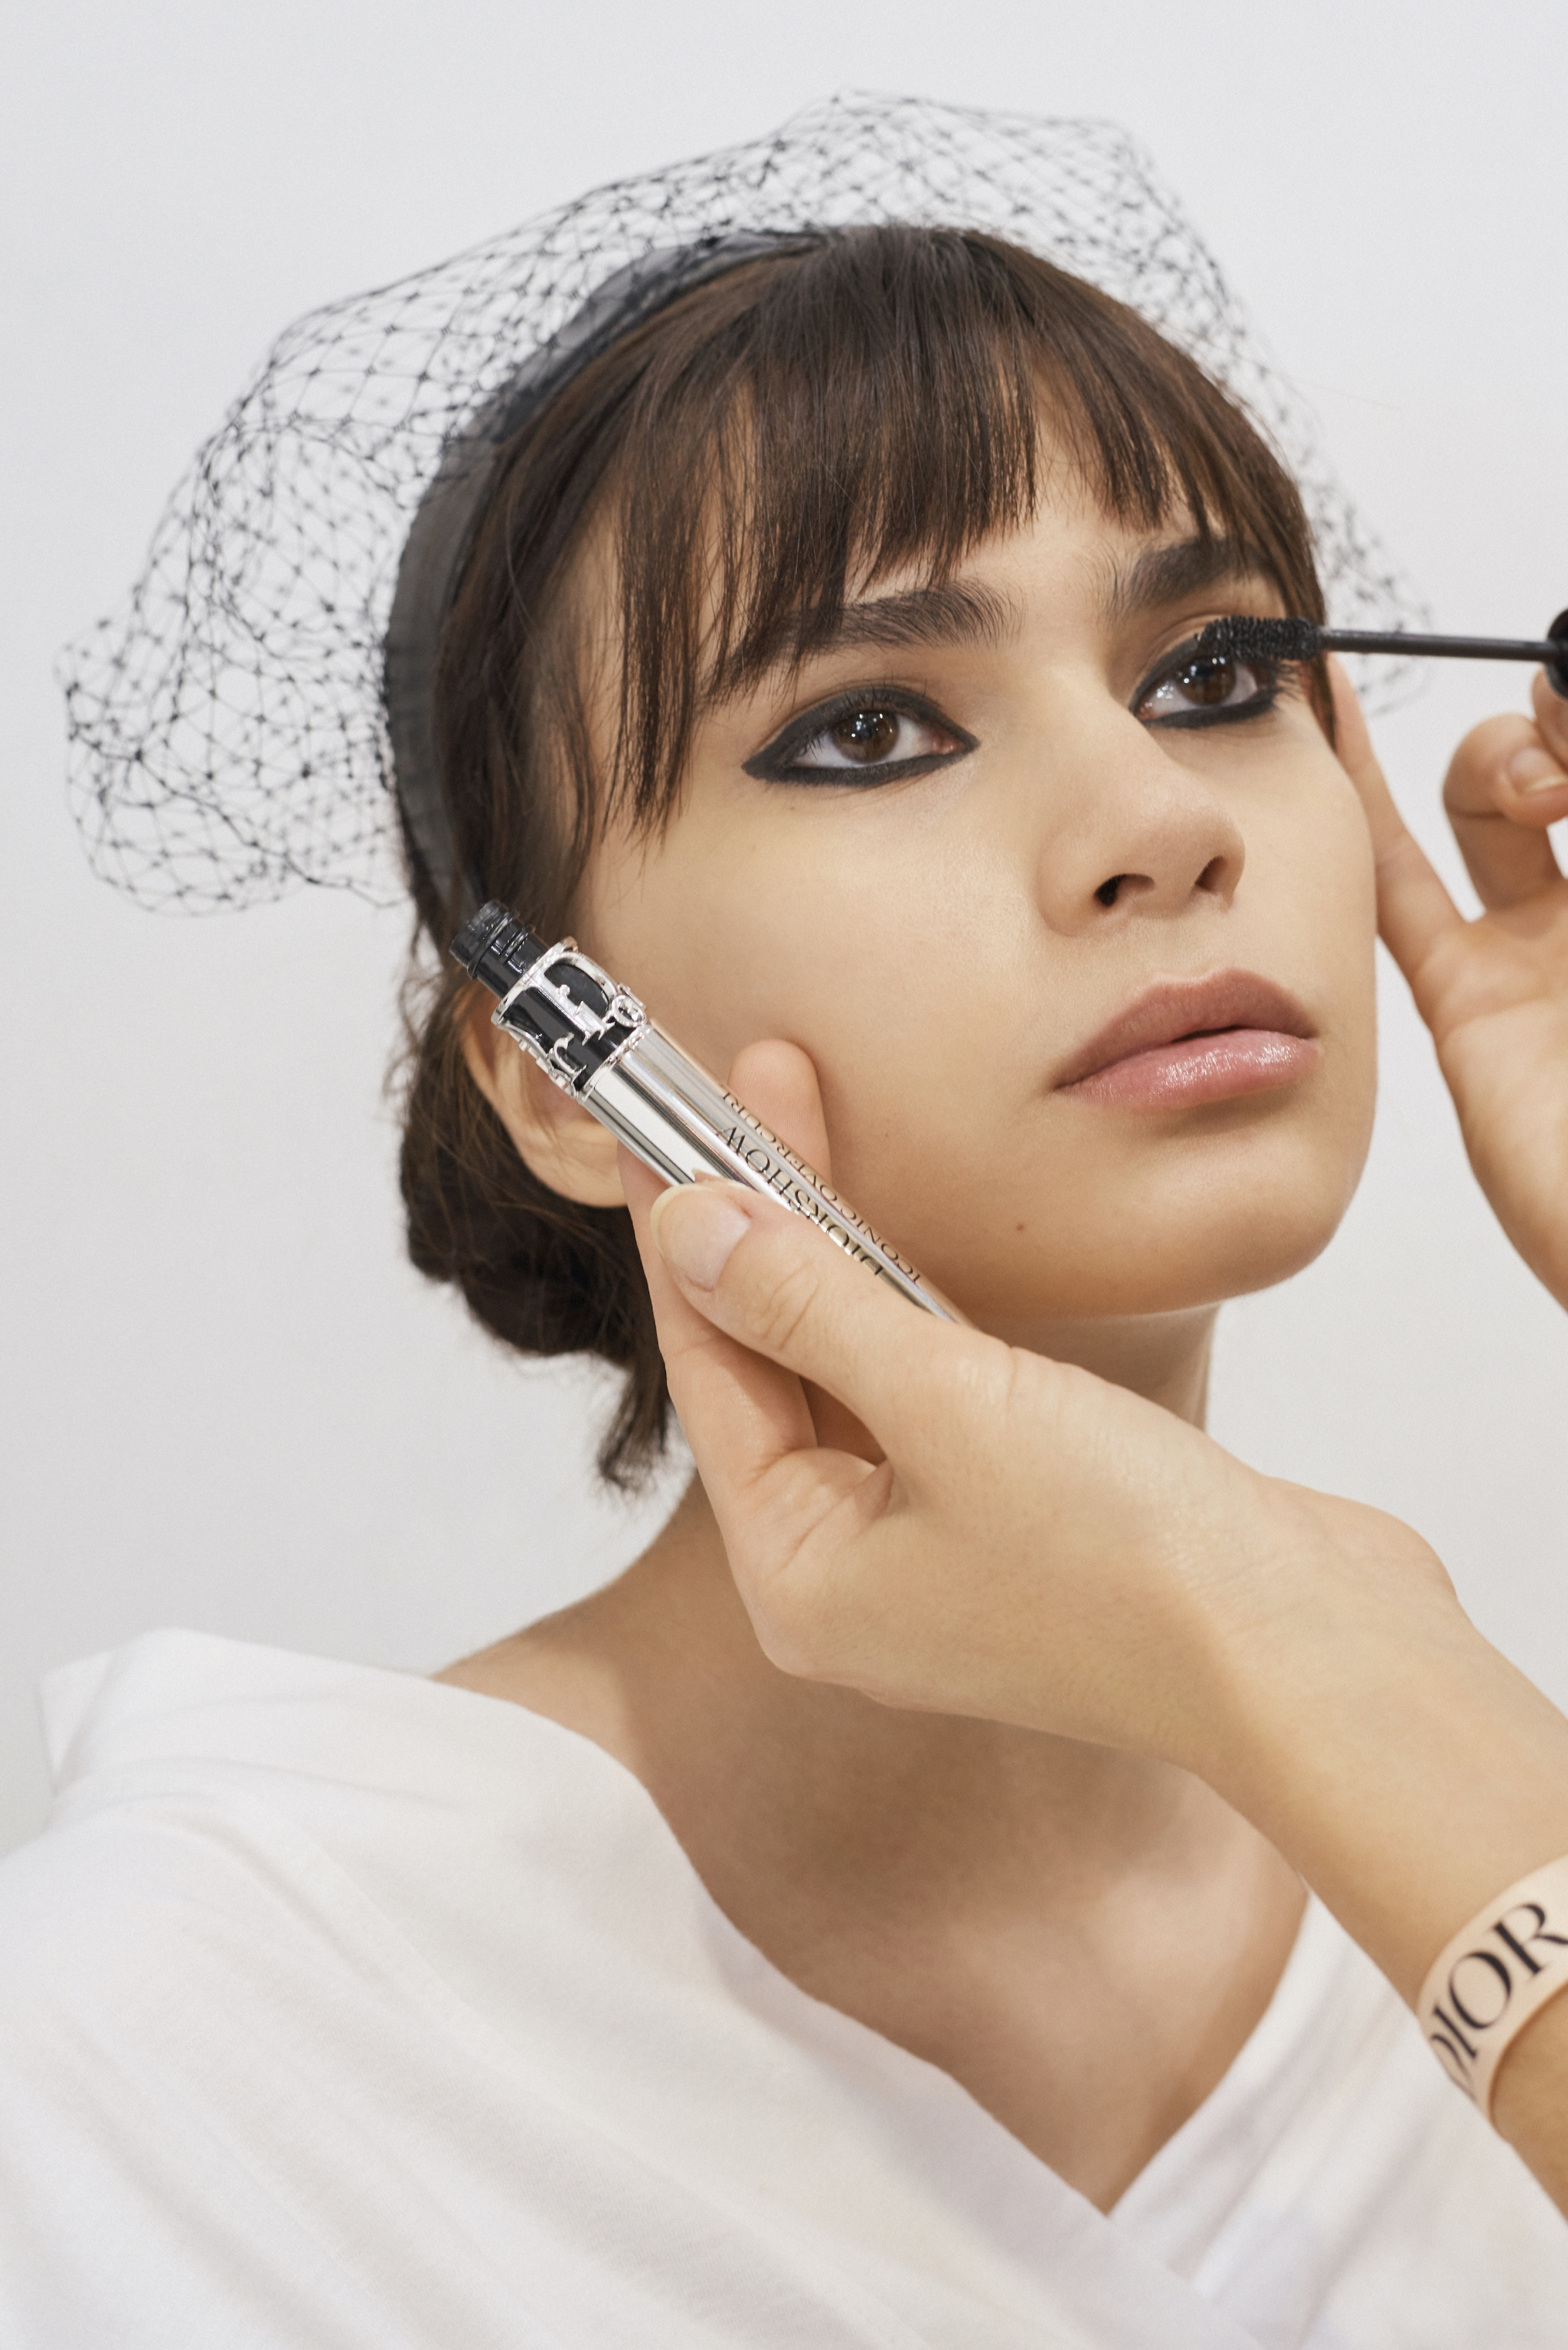 Dior spring summer 2021 beauty look